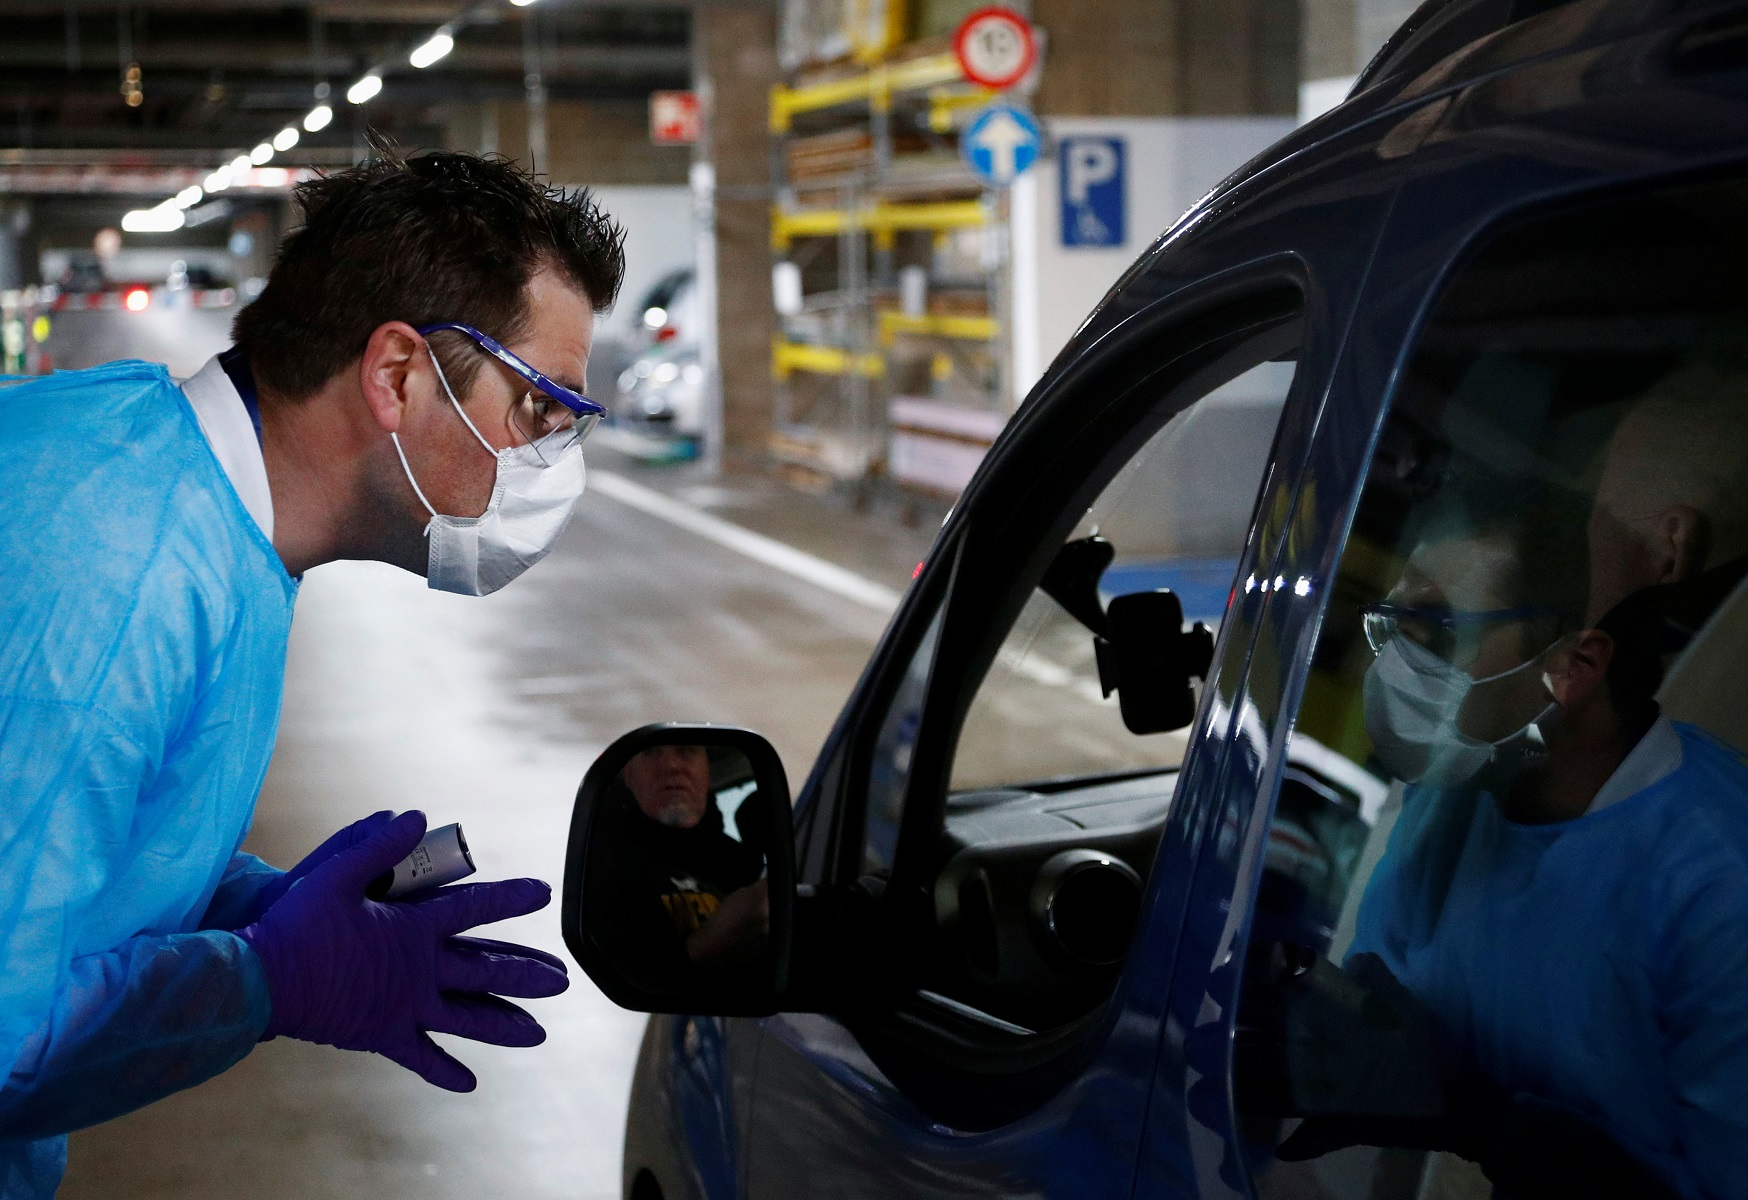 Biologist Jerome De Marchin talks to a patient while he sits in his car at a drive-in testing site for coronavirus (COVID-19) at the Regional Hospital Center in Liege, Belgium March 11, 2020.  REUTERS/Francois Lenoir